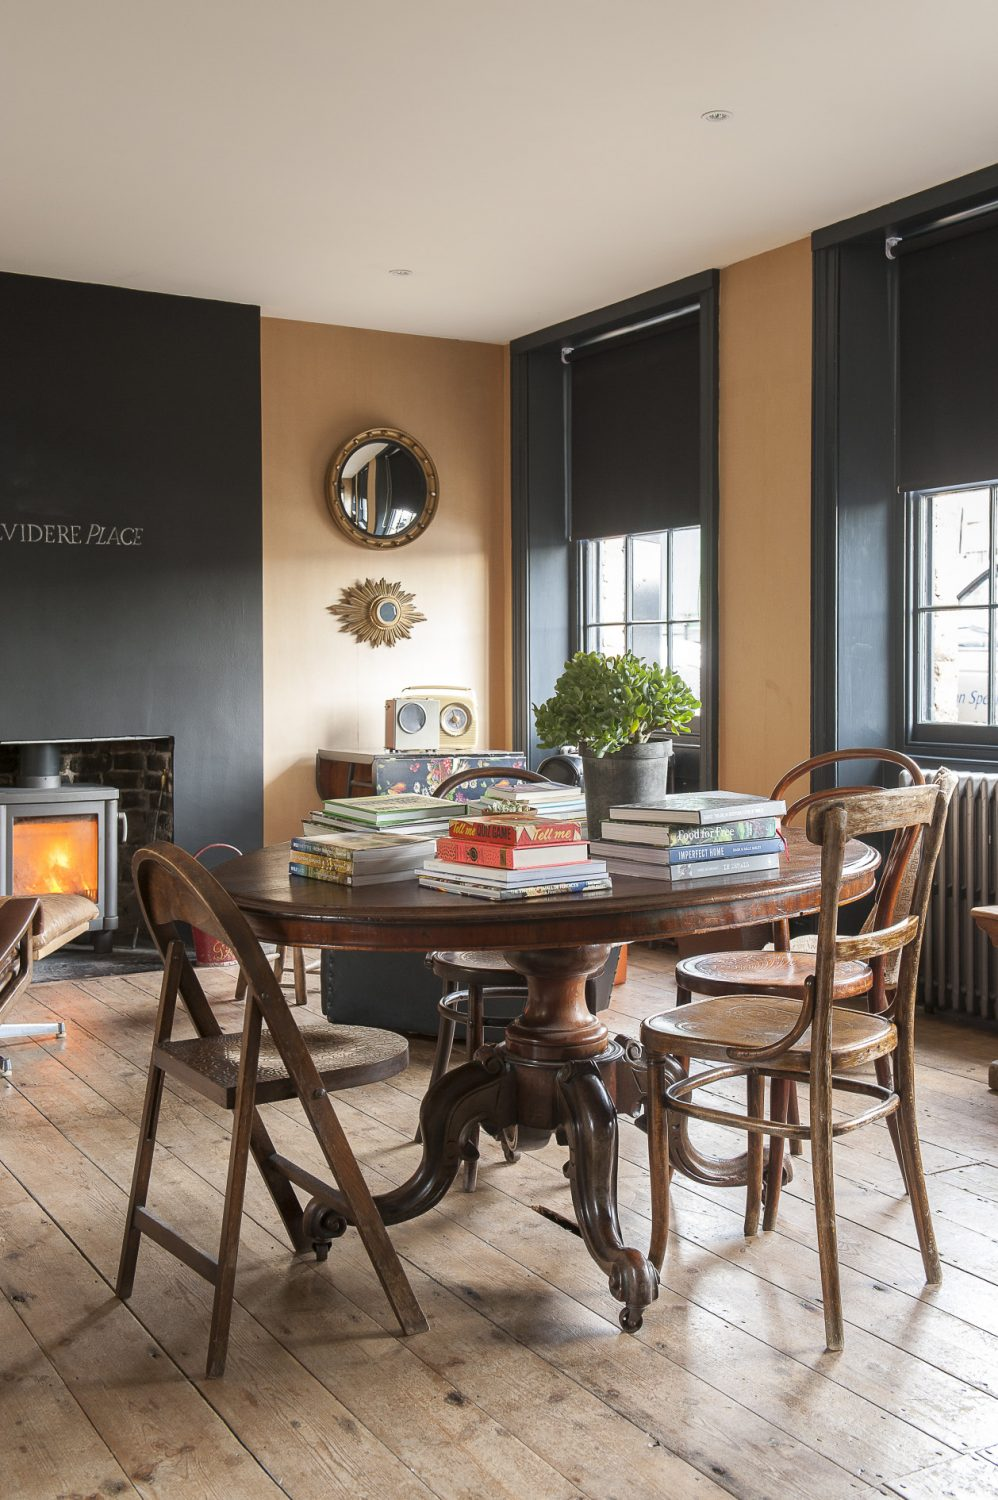 The living room has bare floorboards, blackboard paint on the chimney breast and, on closer inspection, brown wrapping paper on the walls – a surprisingly effective look